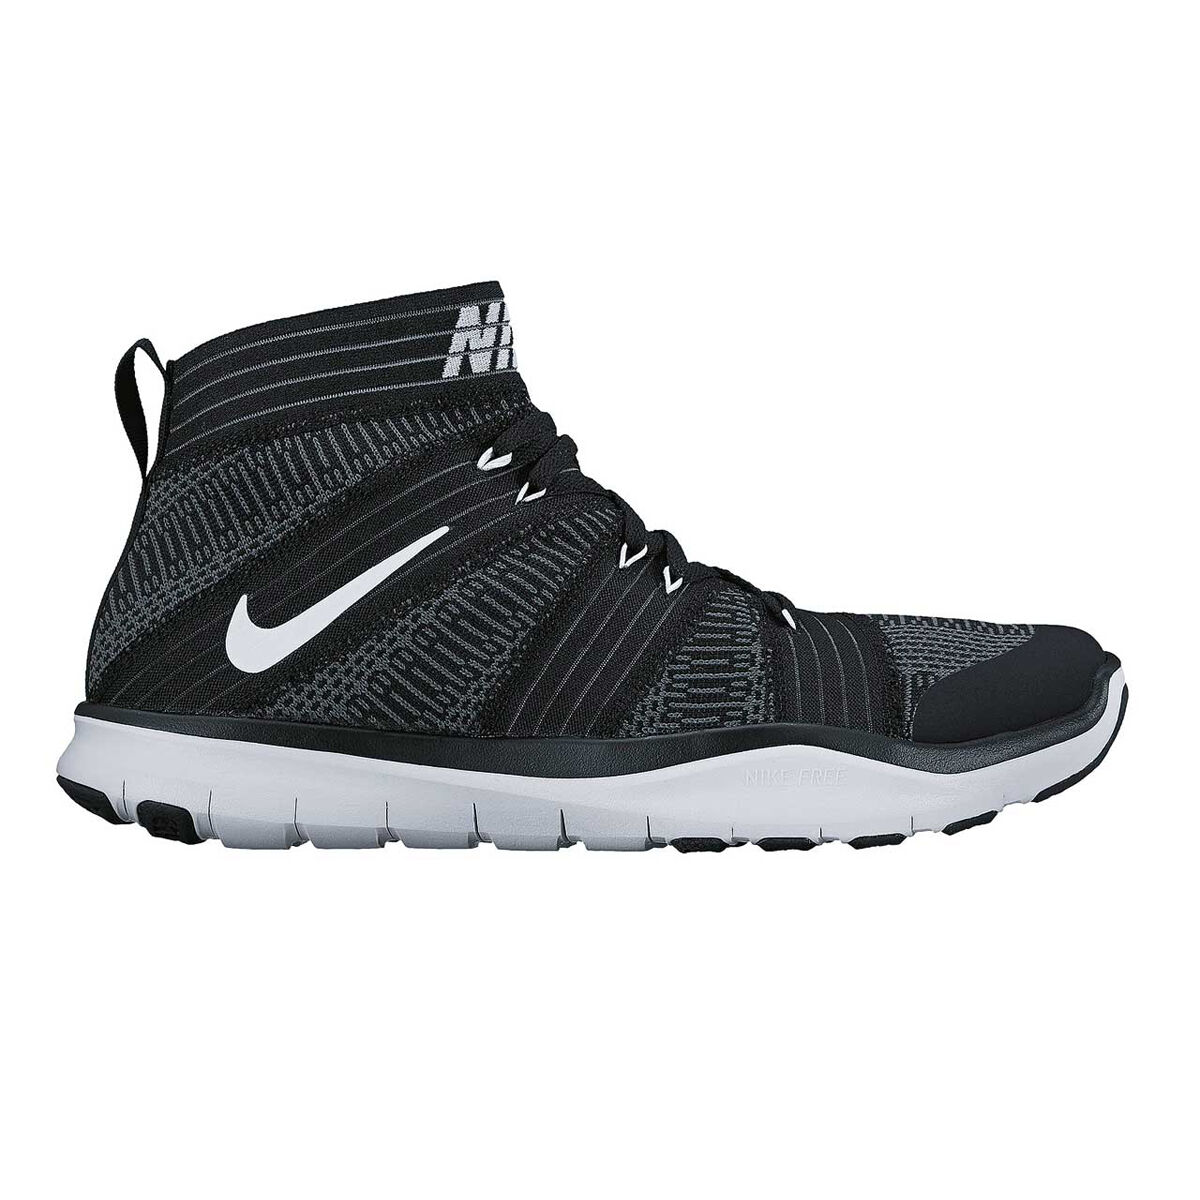 c49091f881d1 ... ebay nike free train virtue mens training shoes black white us 9 black  white a8d89 1e517